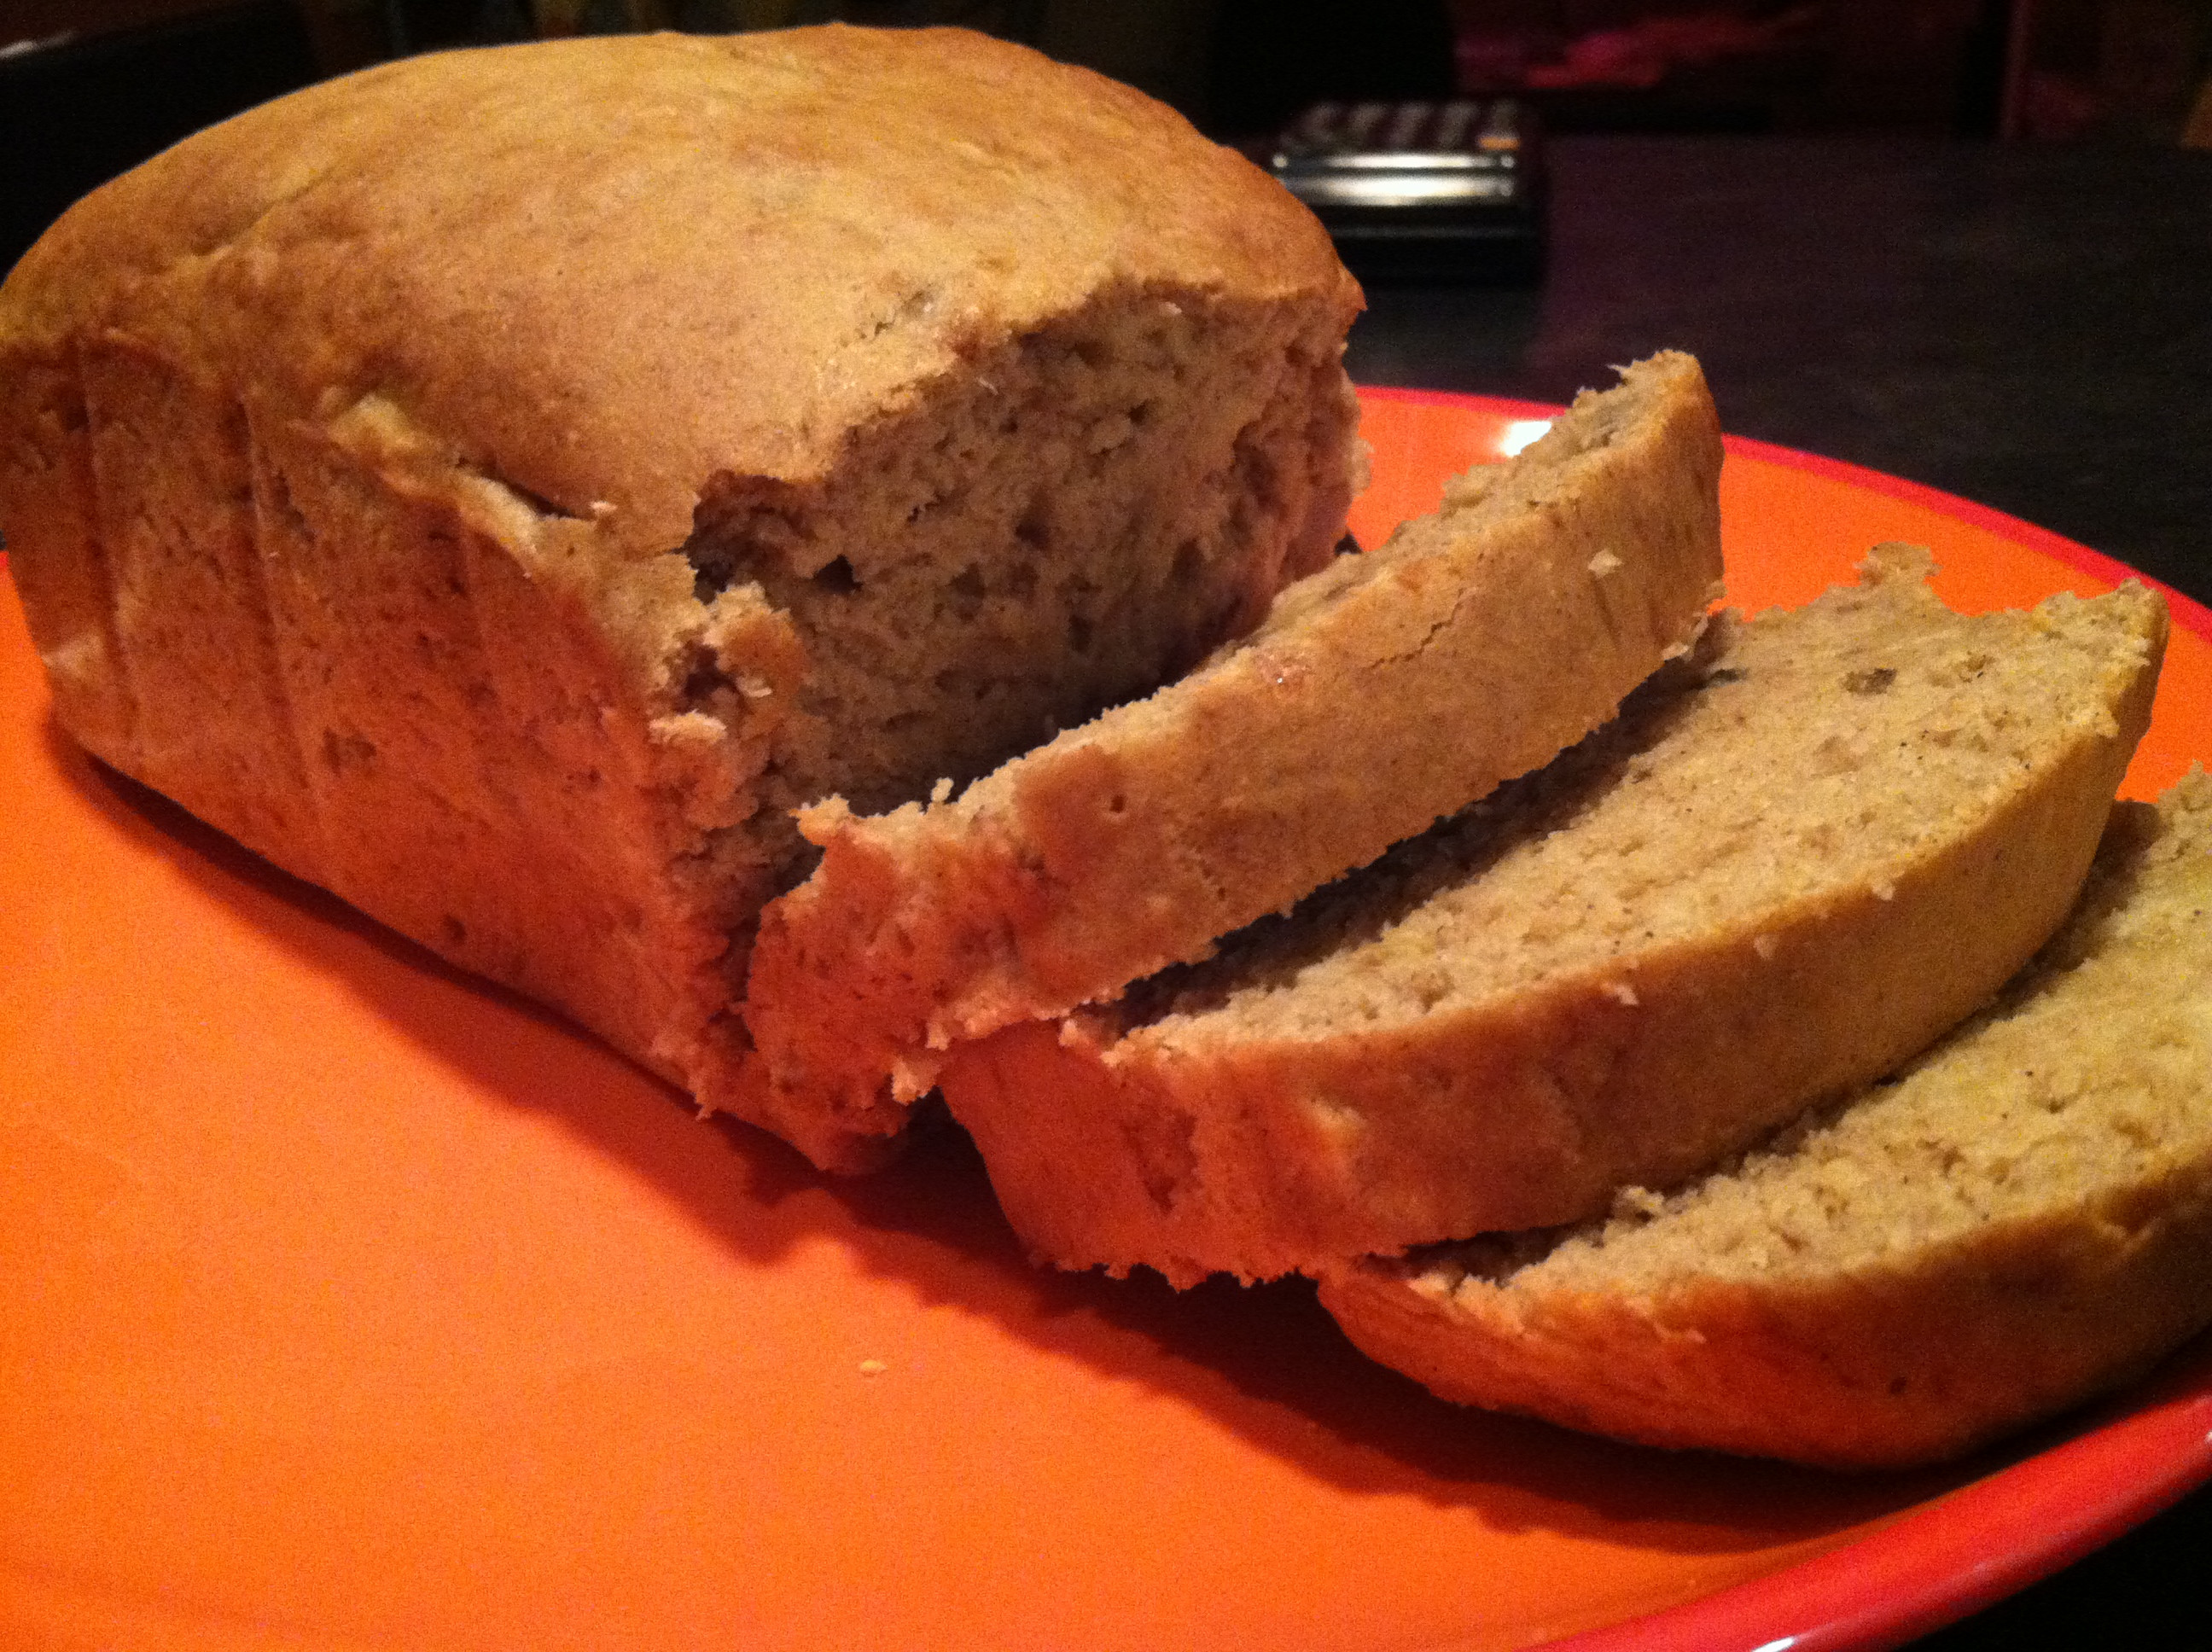 Passover Banana Bread  Banana Bread – BRG Health • Bonnie R Giller • Dietetics